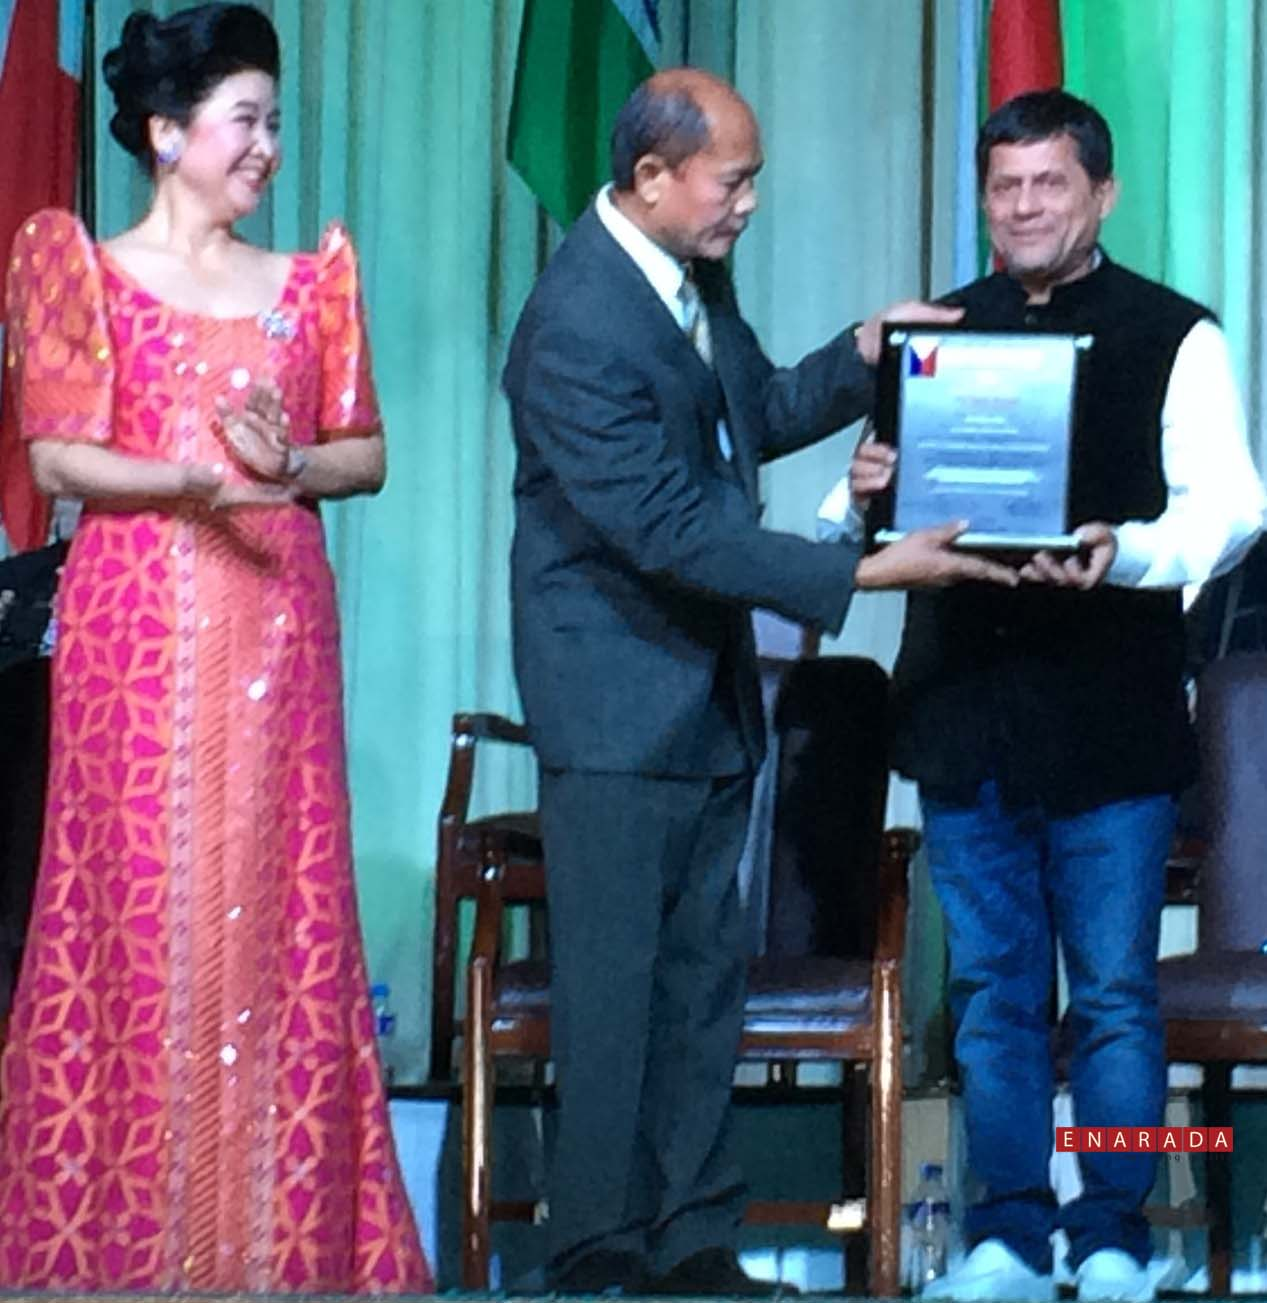 samanta receives 2014 gusi peace prize enarada com achyuta samanta receiving gusi peace prize from bary gusi chairman gusi peace prize international